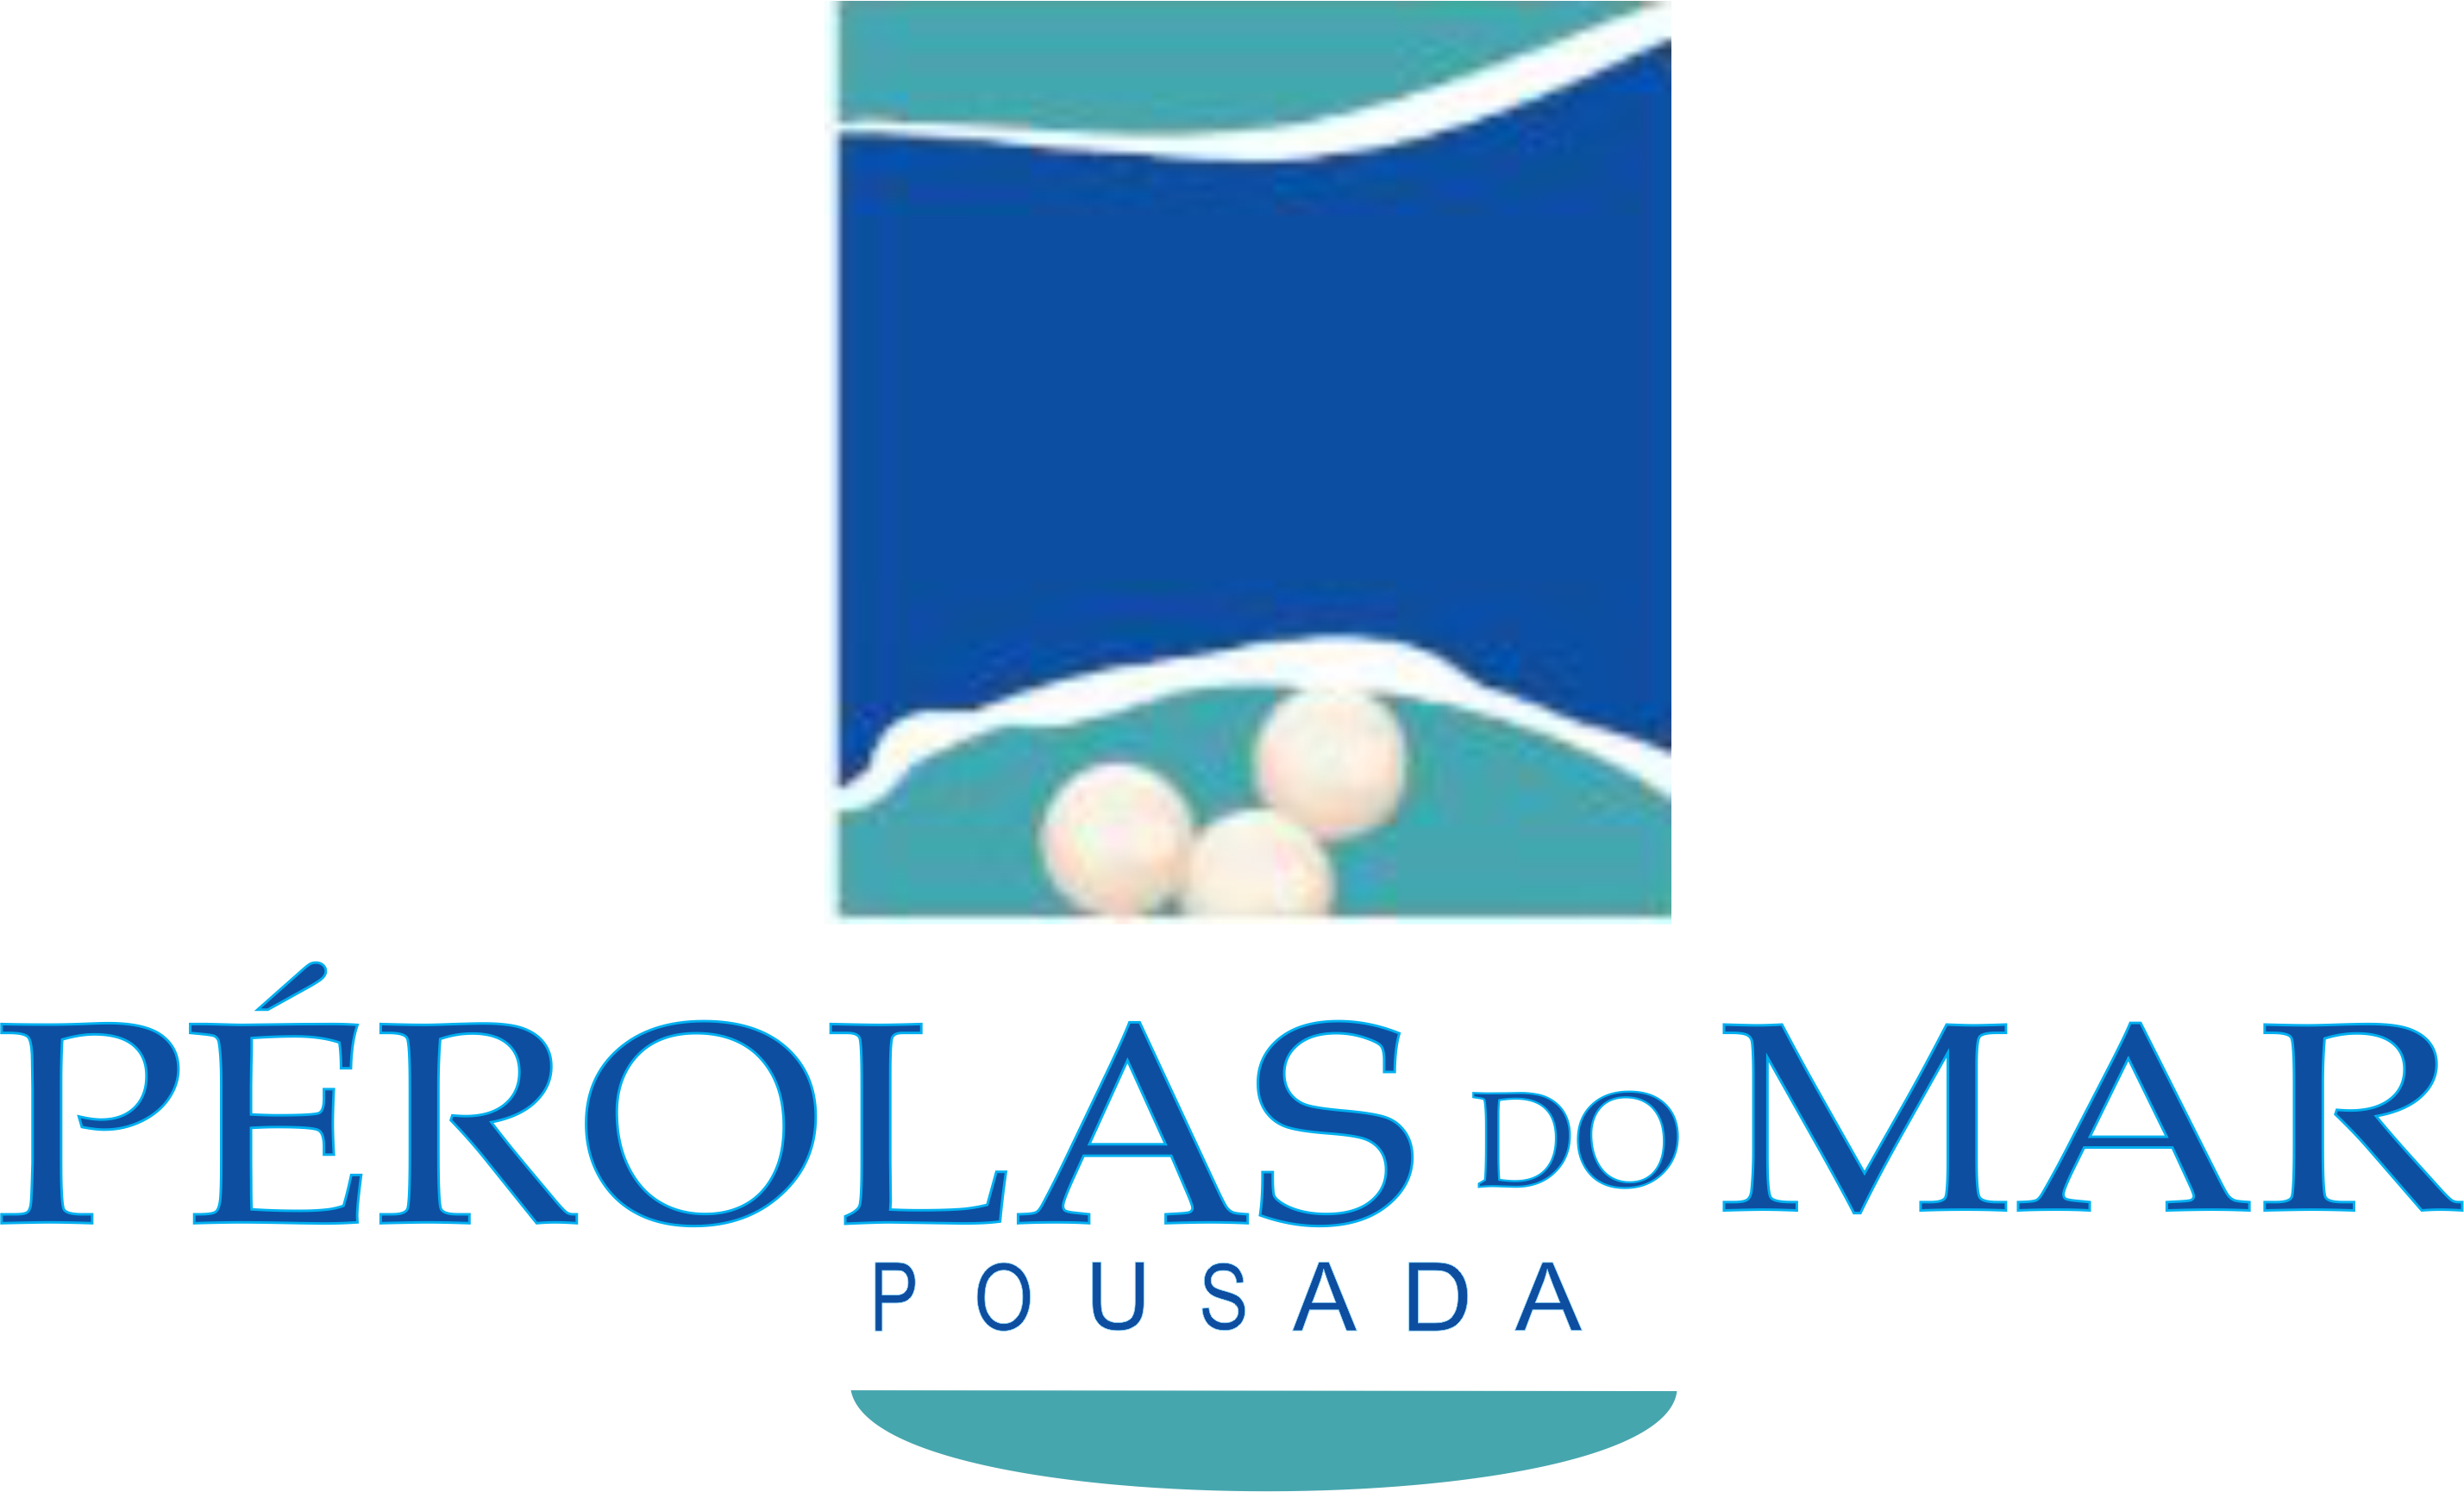 Pousada Perolas do Mar